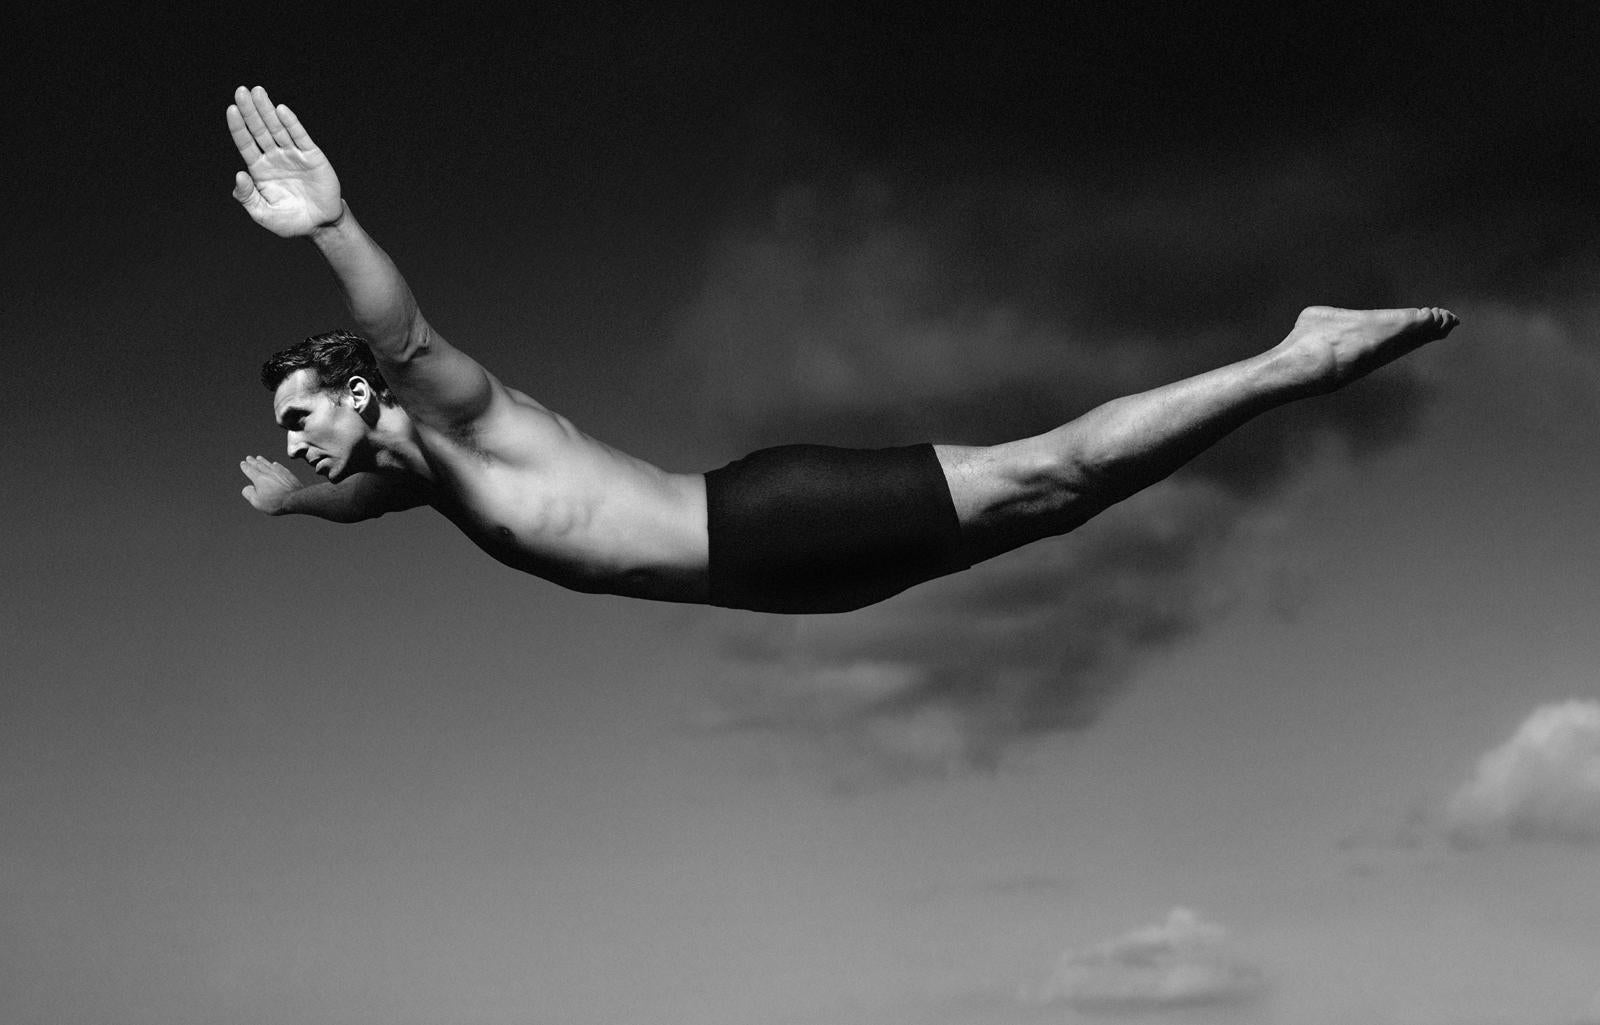 Diver - Signed limited edition fine art print, Black and white photography